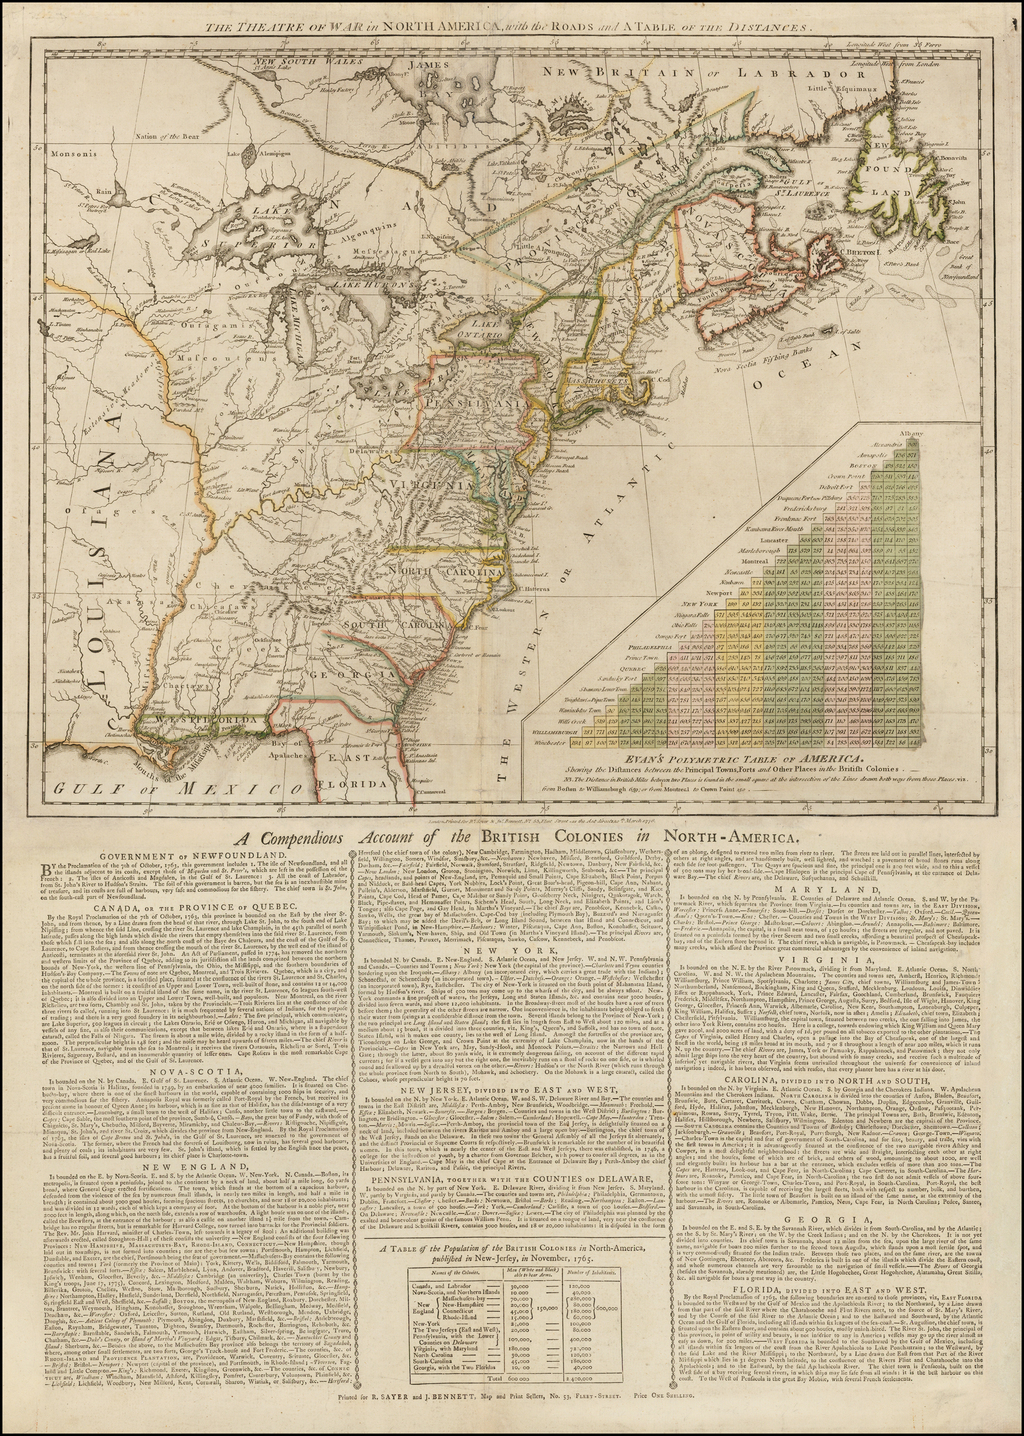 The Theatre of War in North America, with the Roads and a Table of the Distances  [with] A Compendious Account of the British Colonies in North-America.  By Robert Sayer  &  John Bennett